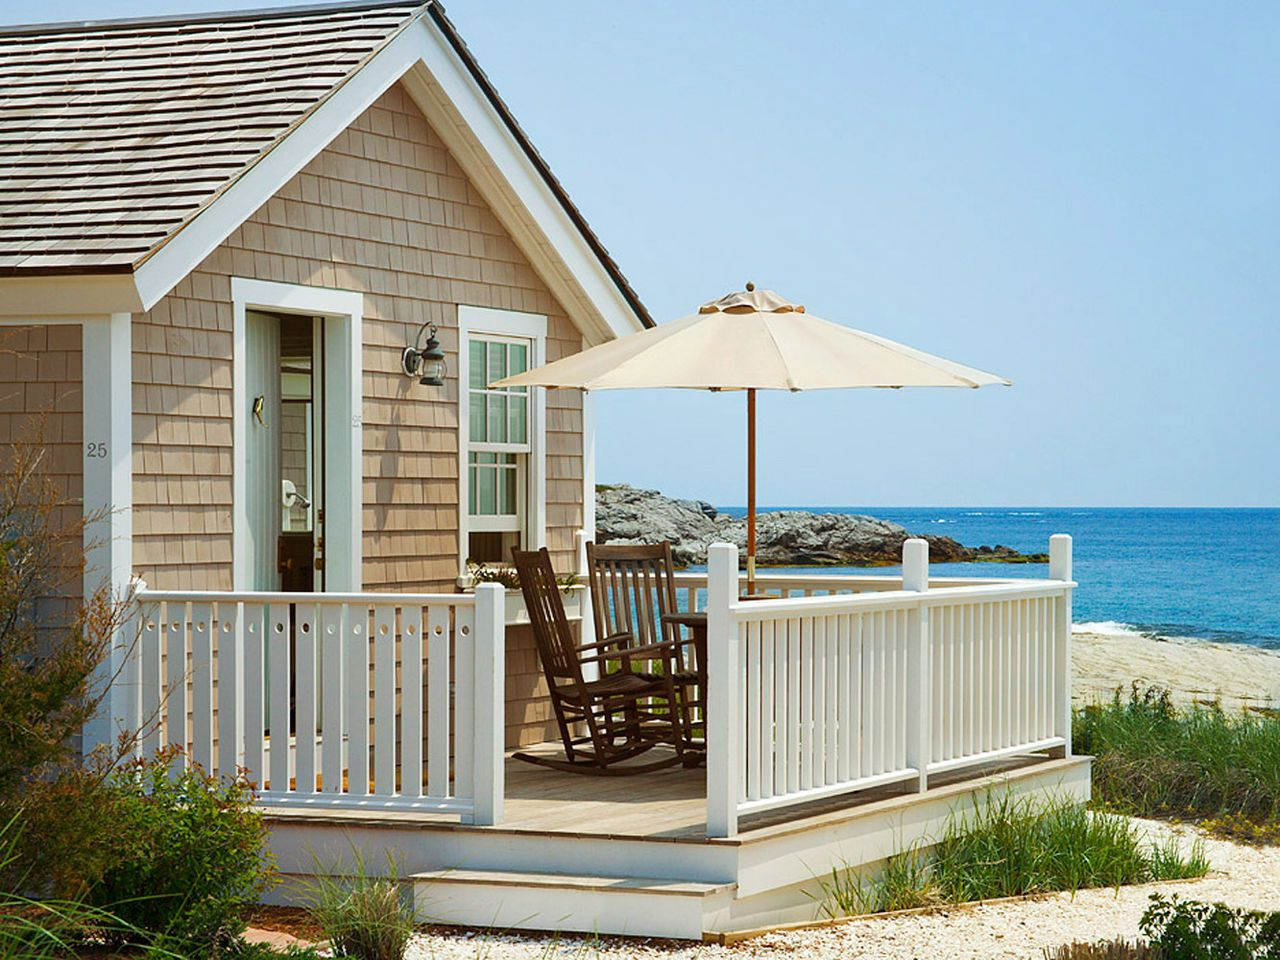 12 Best Seaside Inns In The U S Seaside Inn Outdoor Structures And Newport